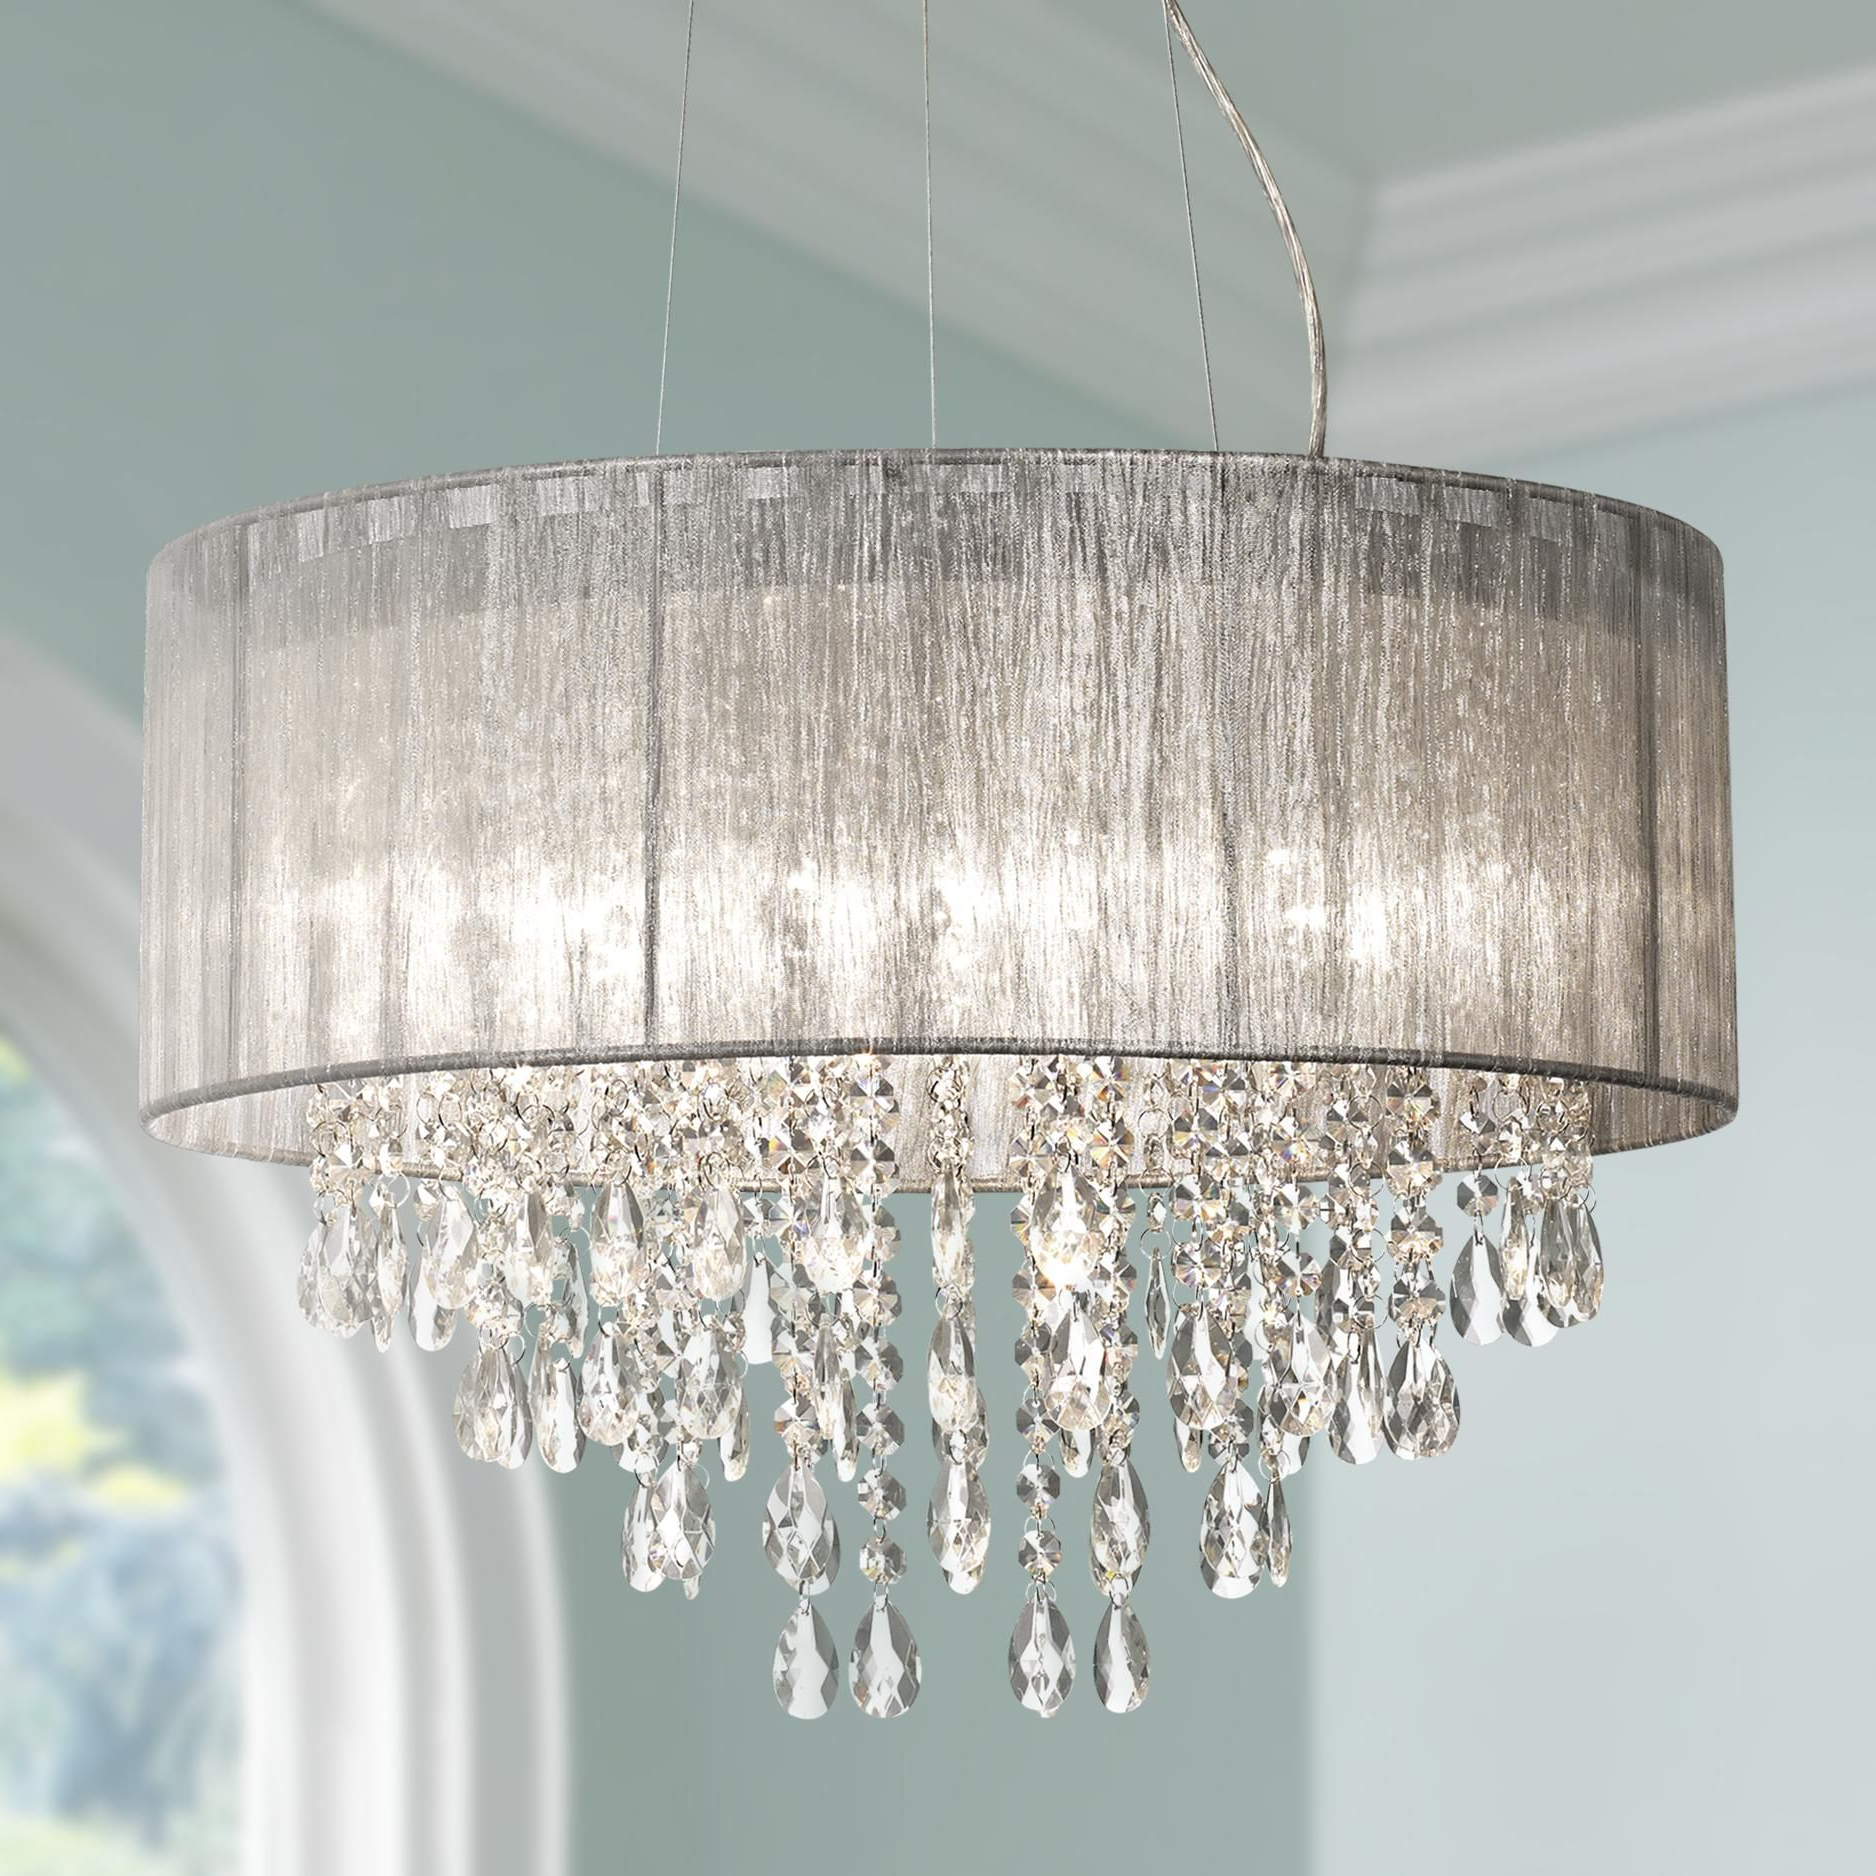 """Possini Euro Jolie 20""""w Silver Fabric Crystal Chandelier Within Most Up To Date Abel 5 Light Drum Chandeliers (View 20 of 25)"""